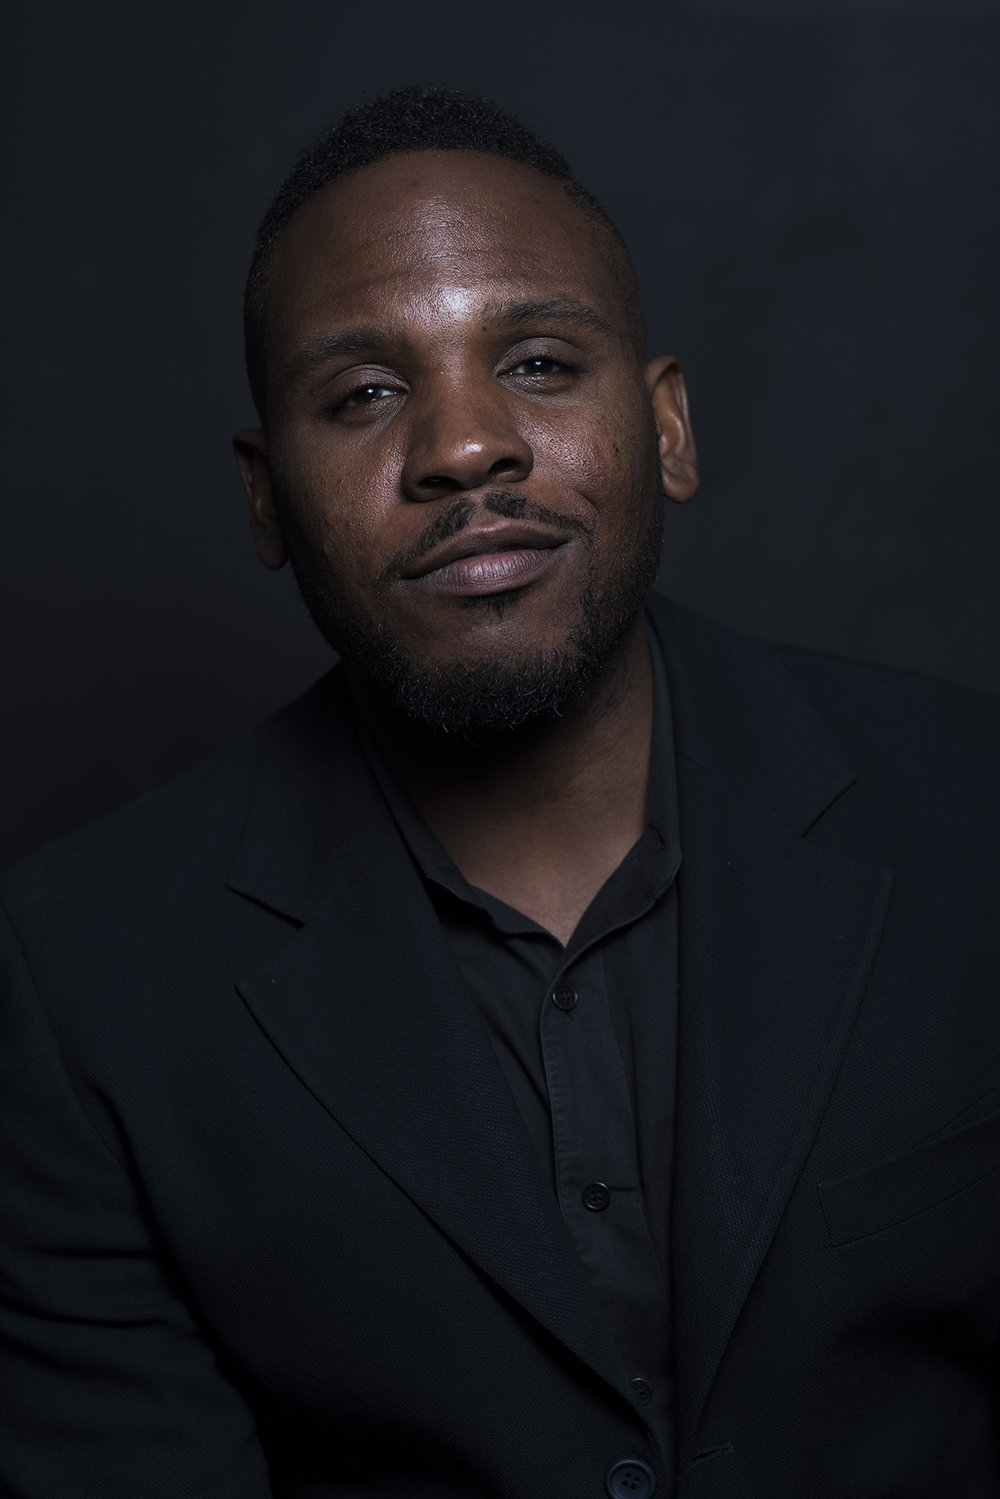 Kimahli Powell | Director/Dramaturge Kimahli has directed and served as dramaturge for each production of Secrets of a Black Boy to date (DC Black Theatre Festival, Washington DC, Single Carrot Theatre, Baltimore, 2015; National Black Theatre Festival, North Carolina/Daniel Spectrum Theatre, Toronto, 2013; Danforth Music Hall, Toronto, 2009, Enwave Theatre Toronto, 2007). Additionally, he has worked on How Black Mothers Say I Love you (Technical Director, Factory Theatre, Toronto, 2016) and 'Da Kink in My Hair (Technical Director, National Black Theatre Festival, North Carolina/Enwave Theatre, Toronto,